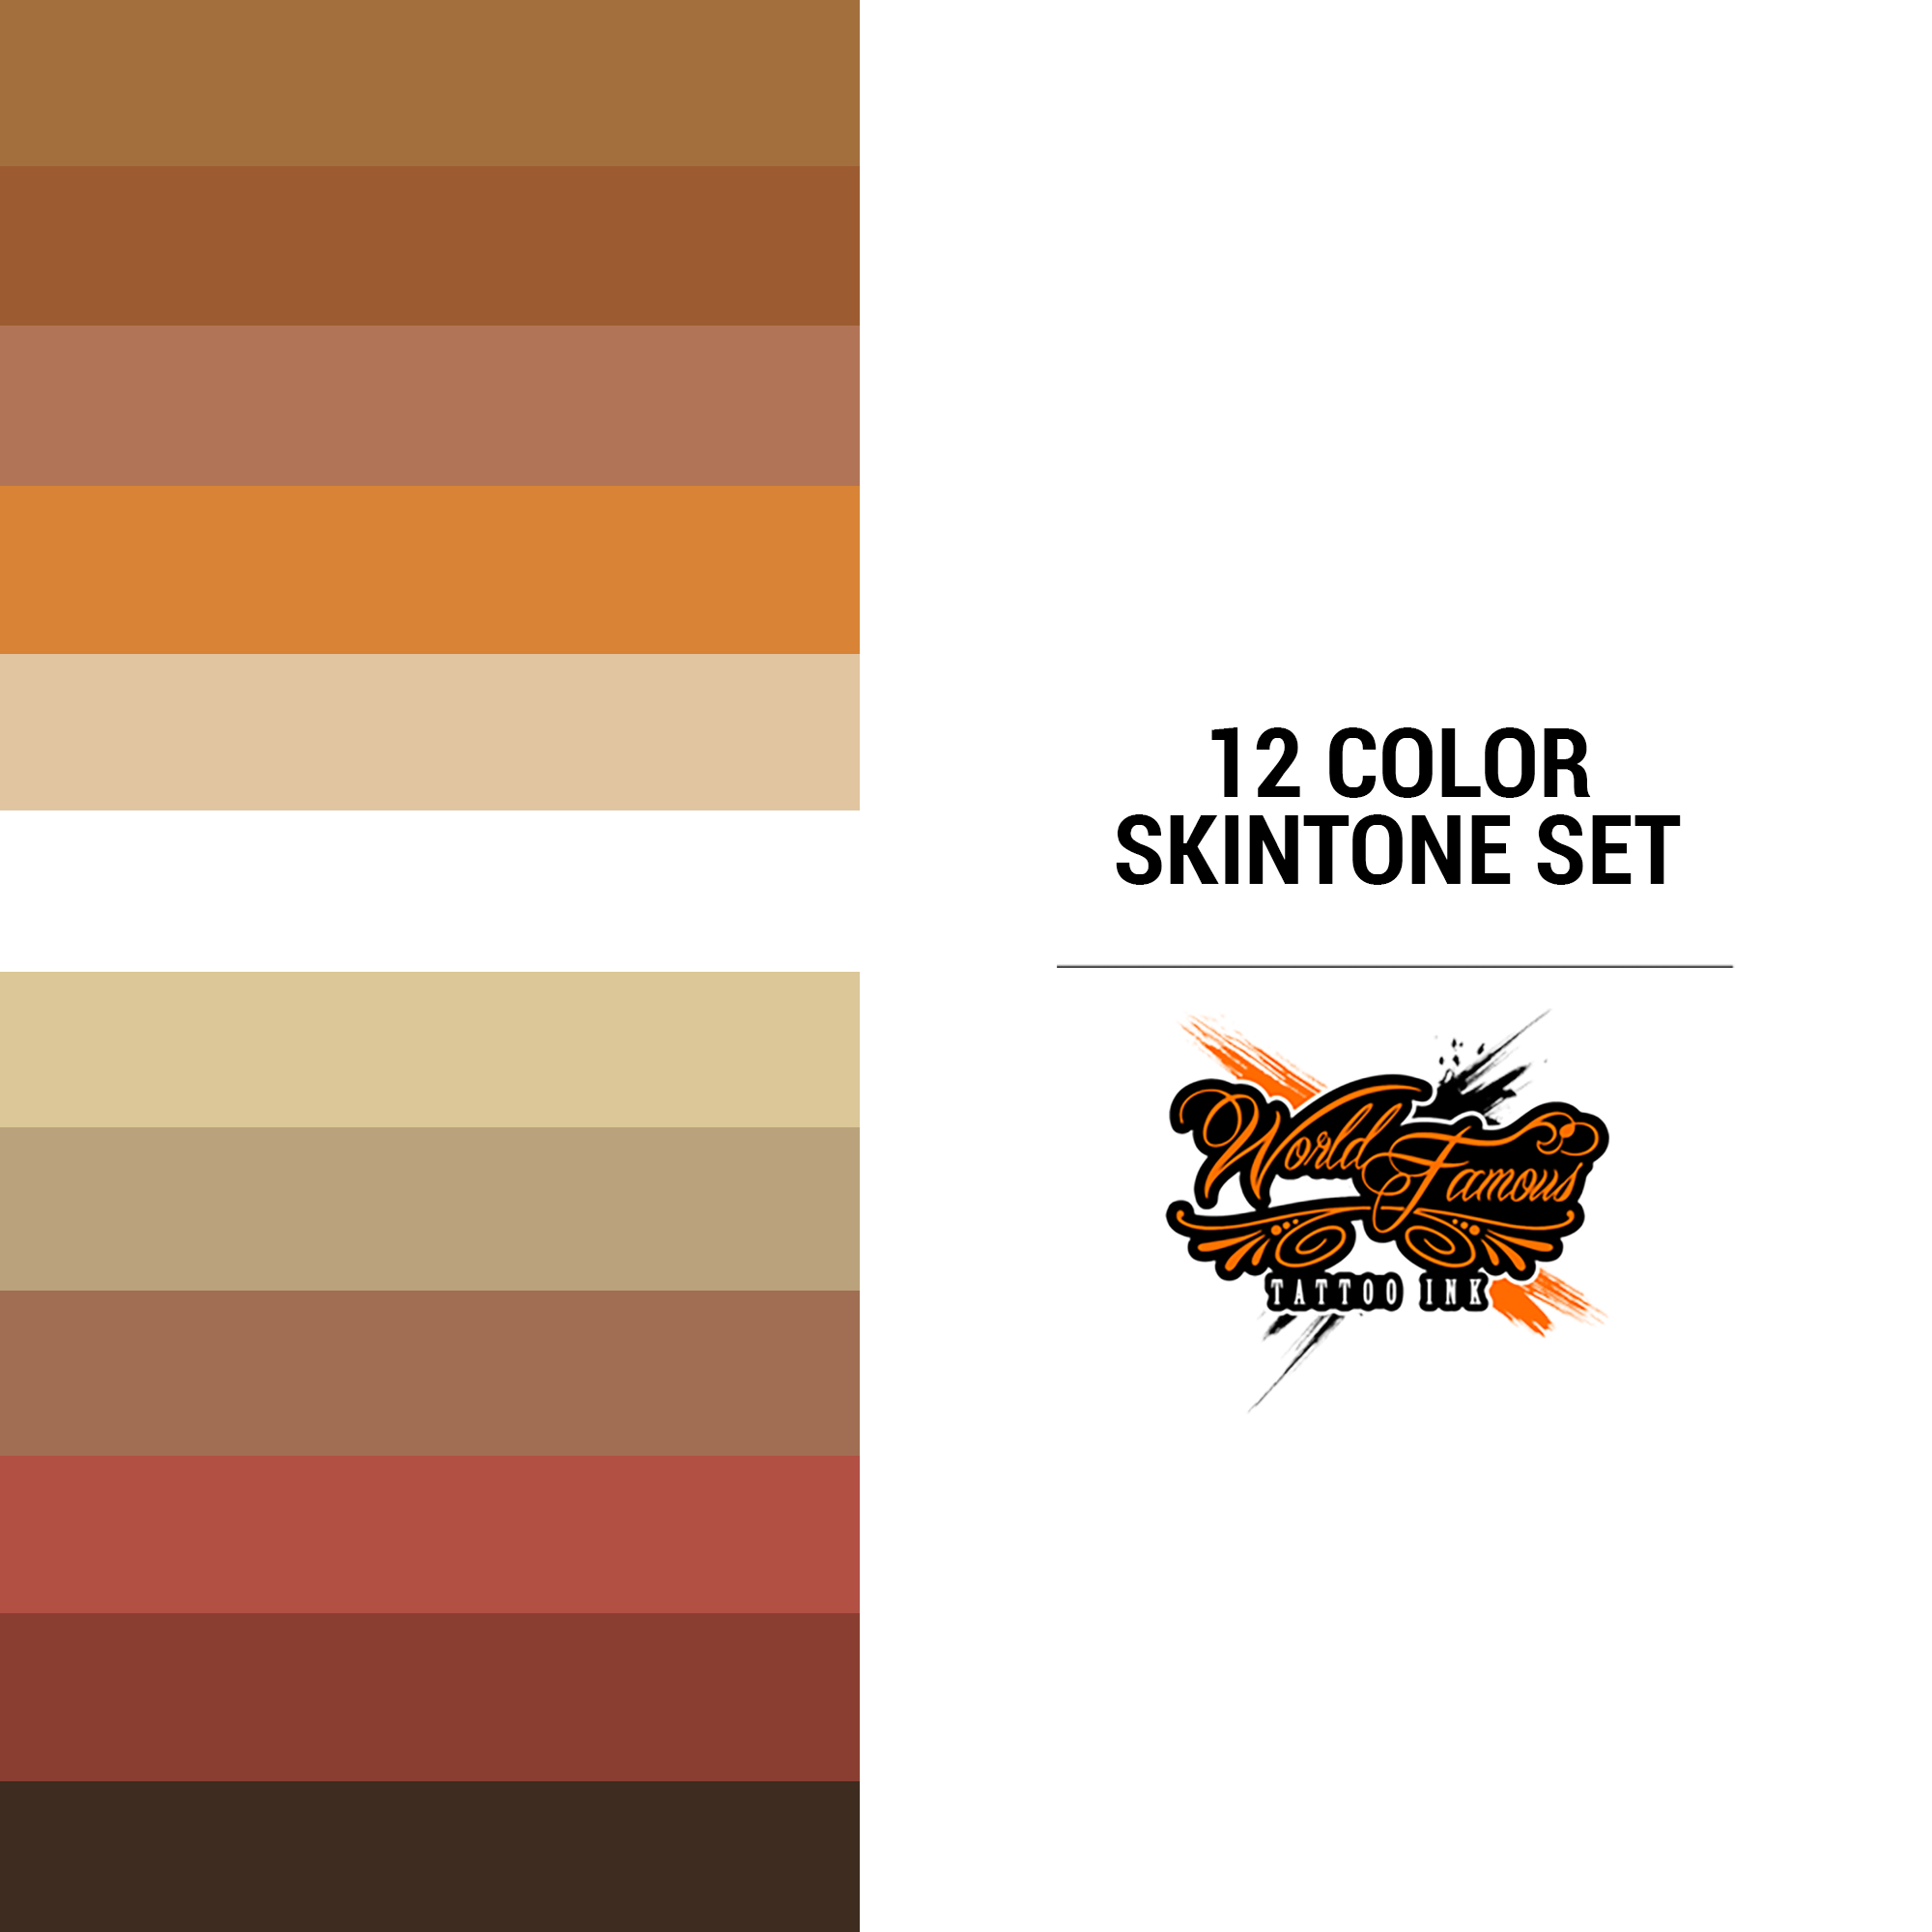 WF 12 Color Skintone Set 1 oz